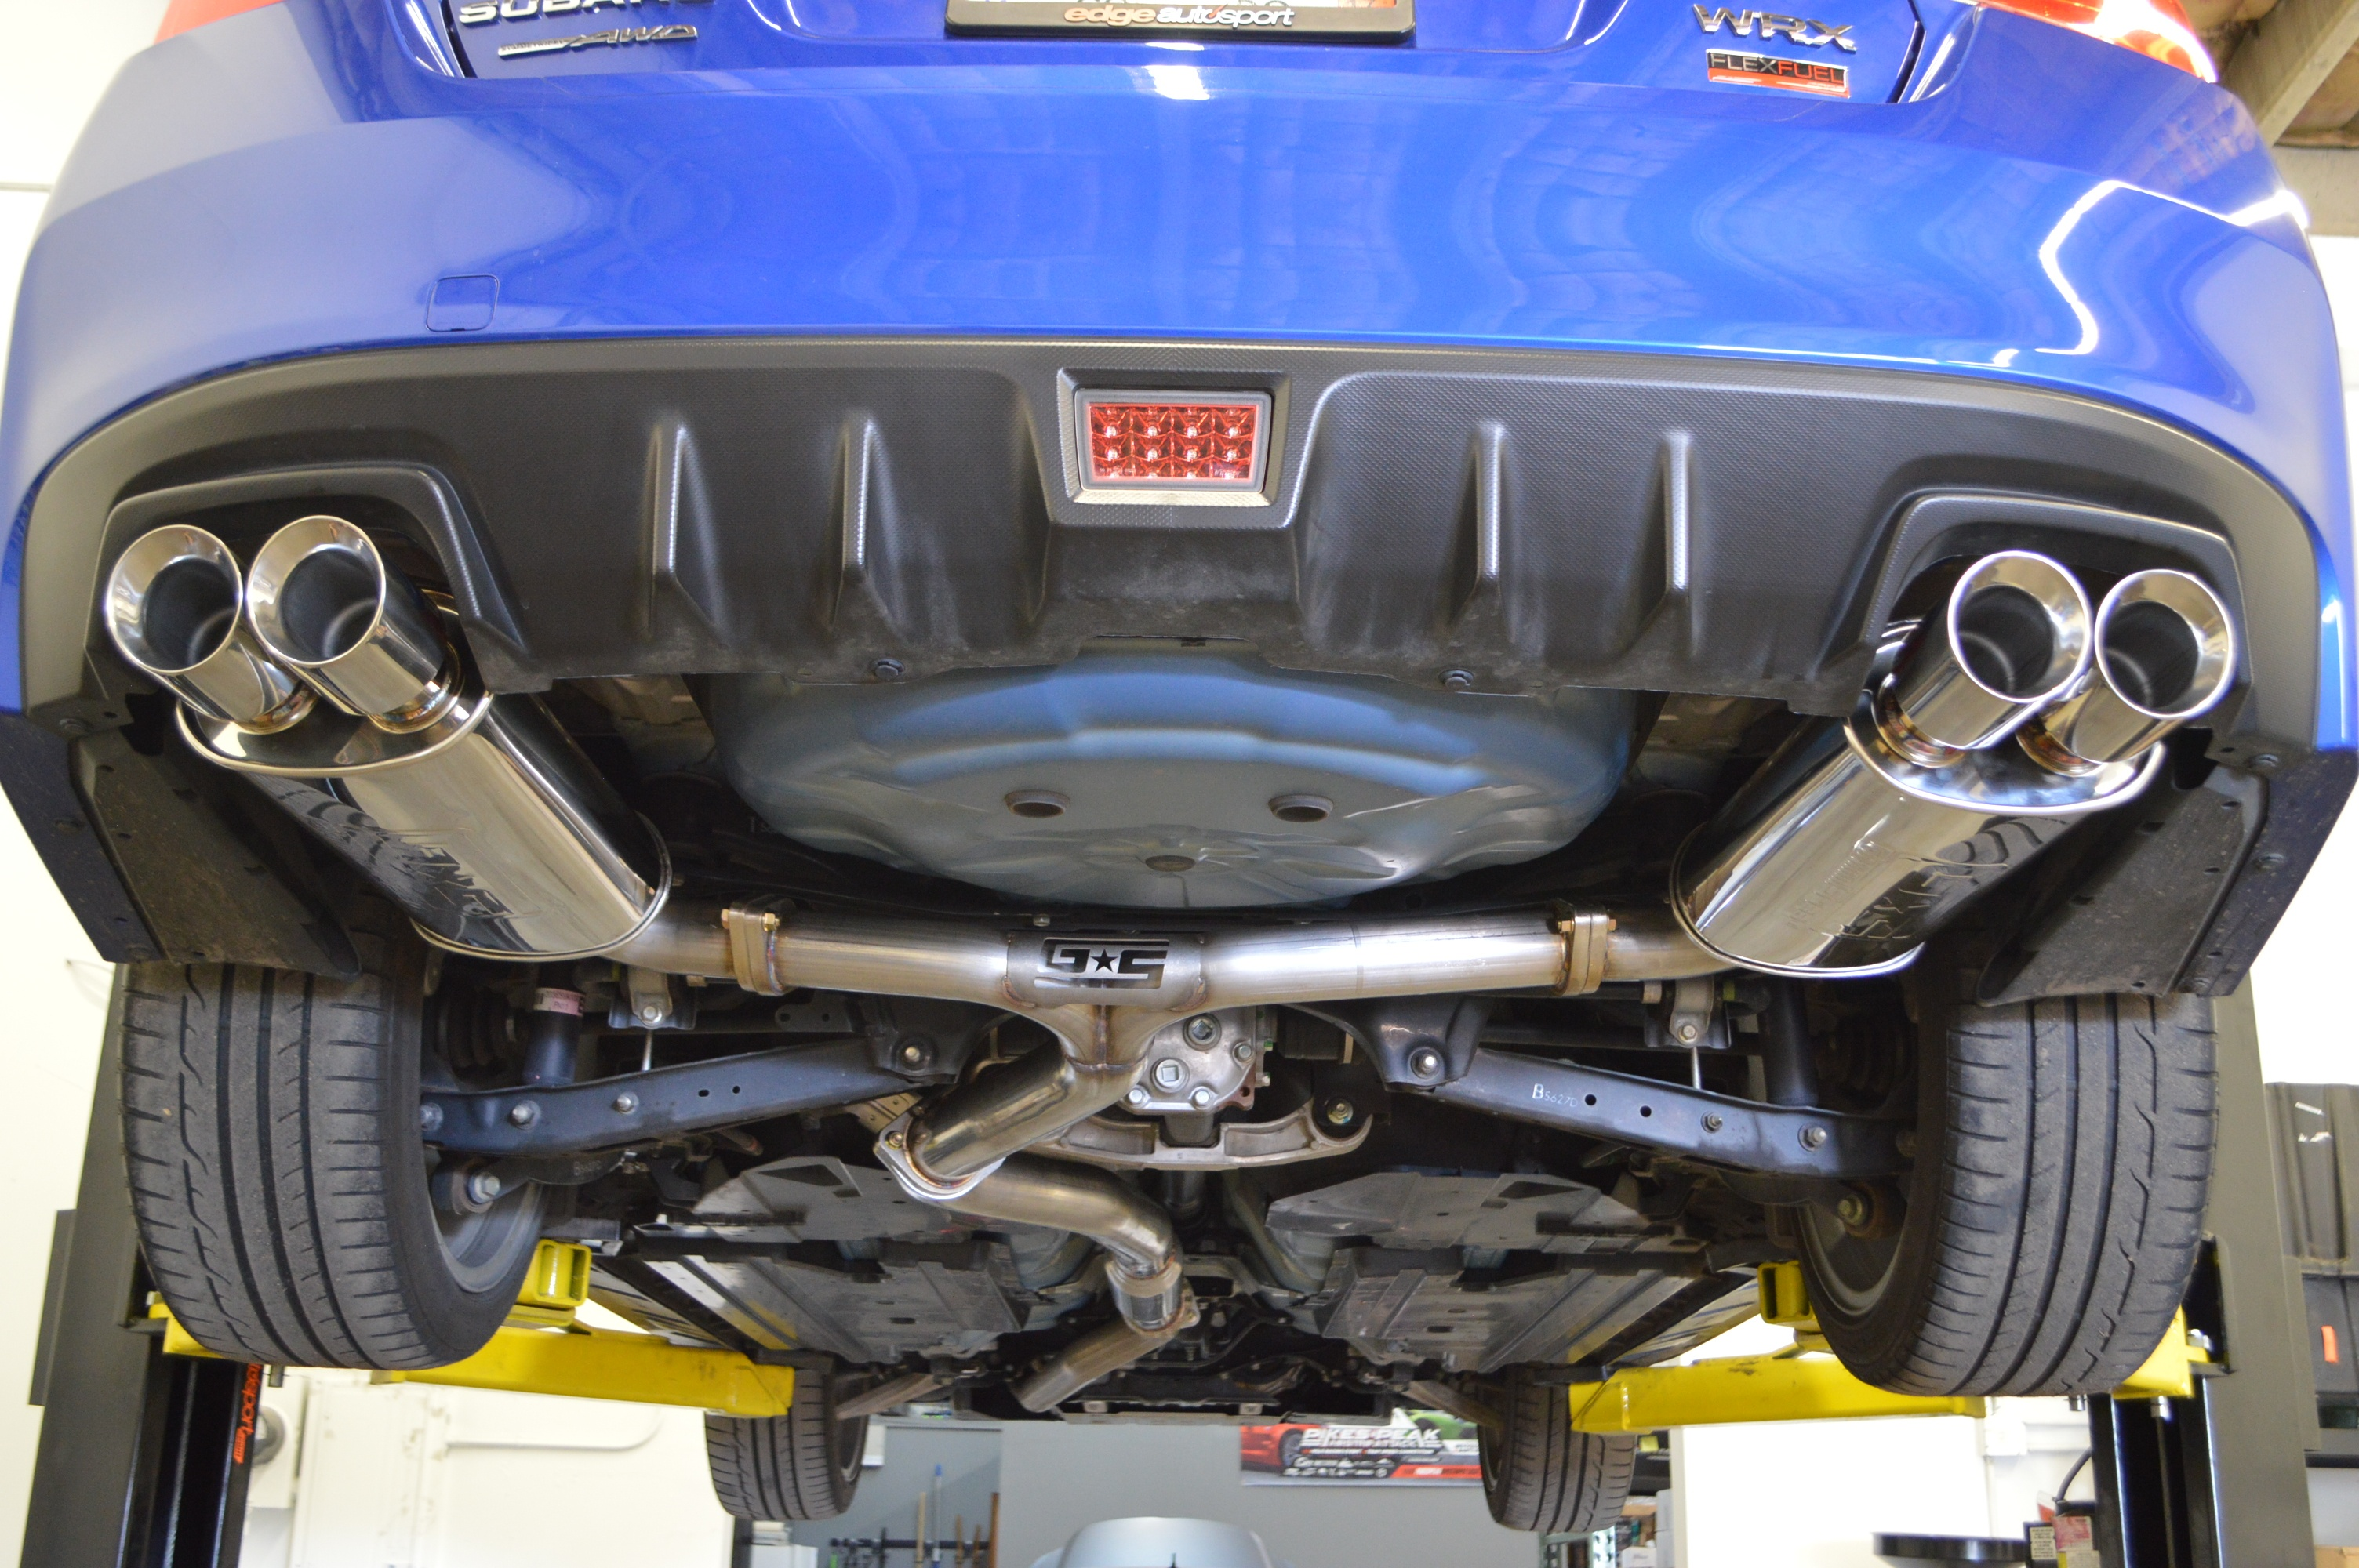 New Product: Grimmspeed Catback Exhaust for Subaru WRX and STI